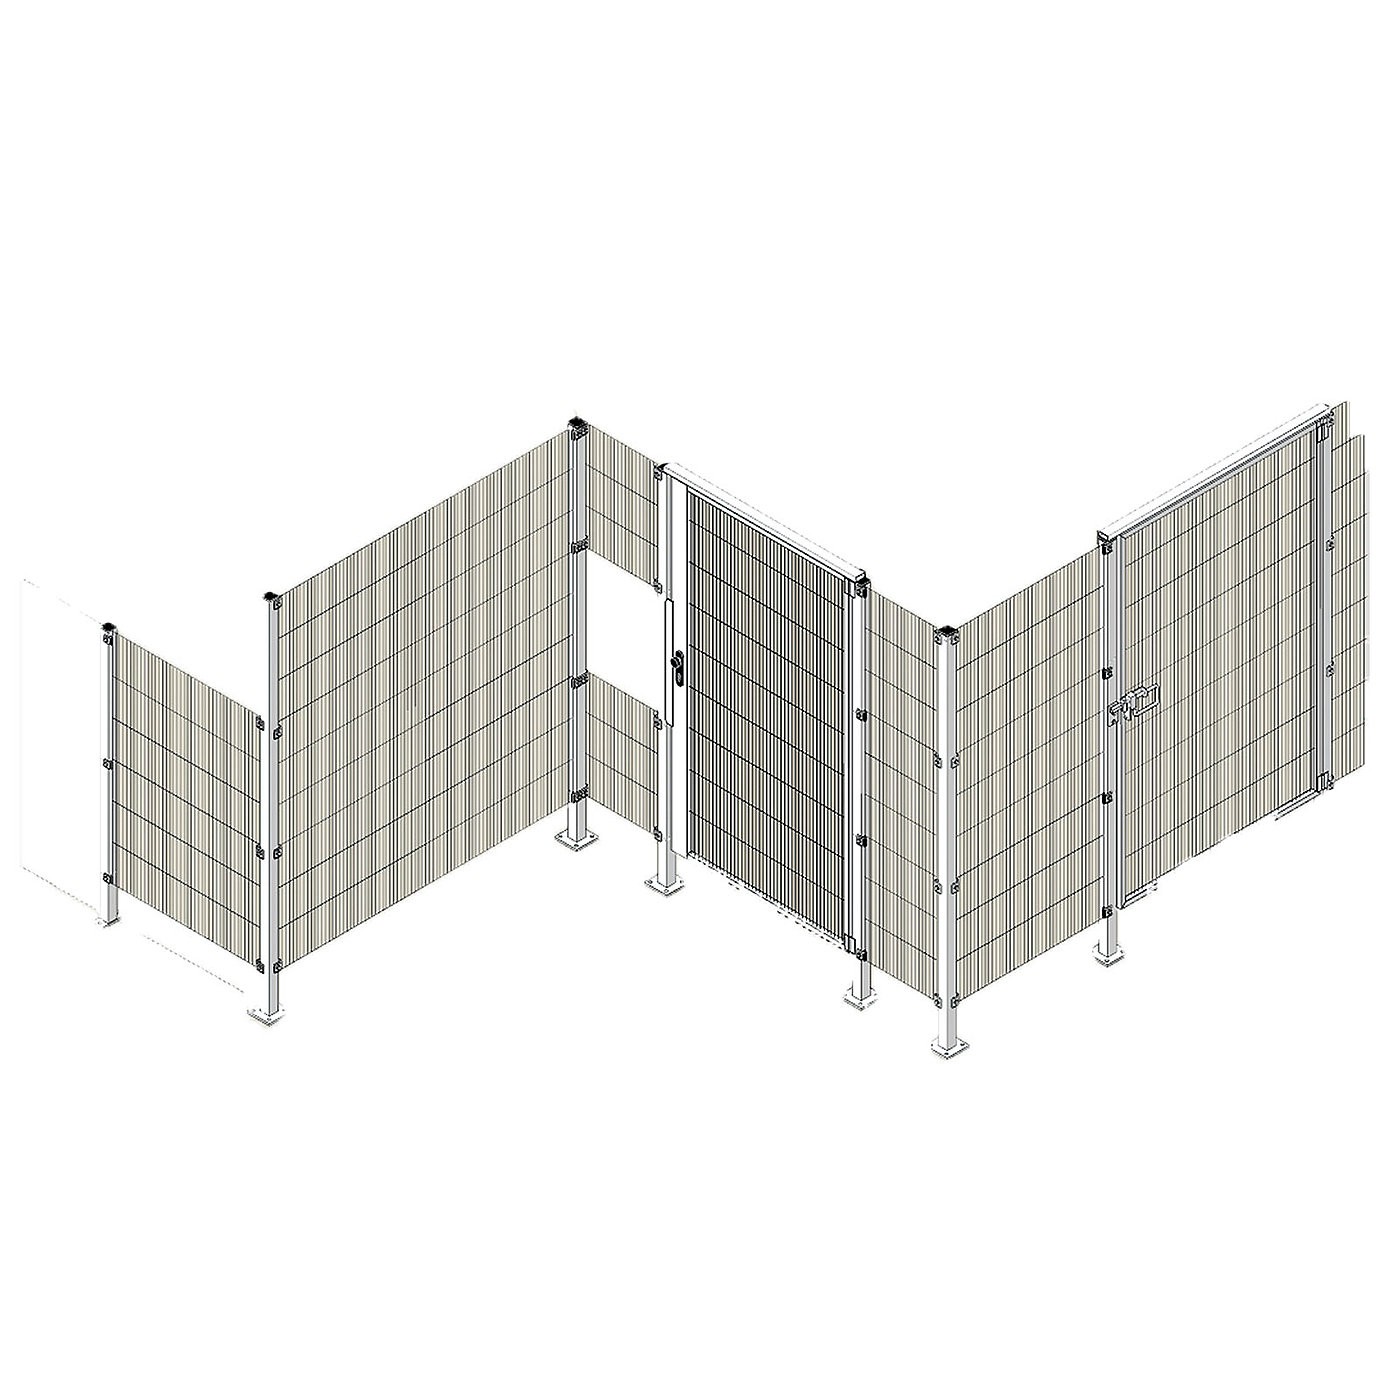 TOOL MOVER PRO protective fence